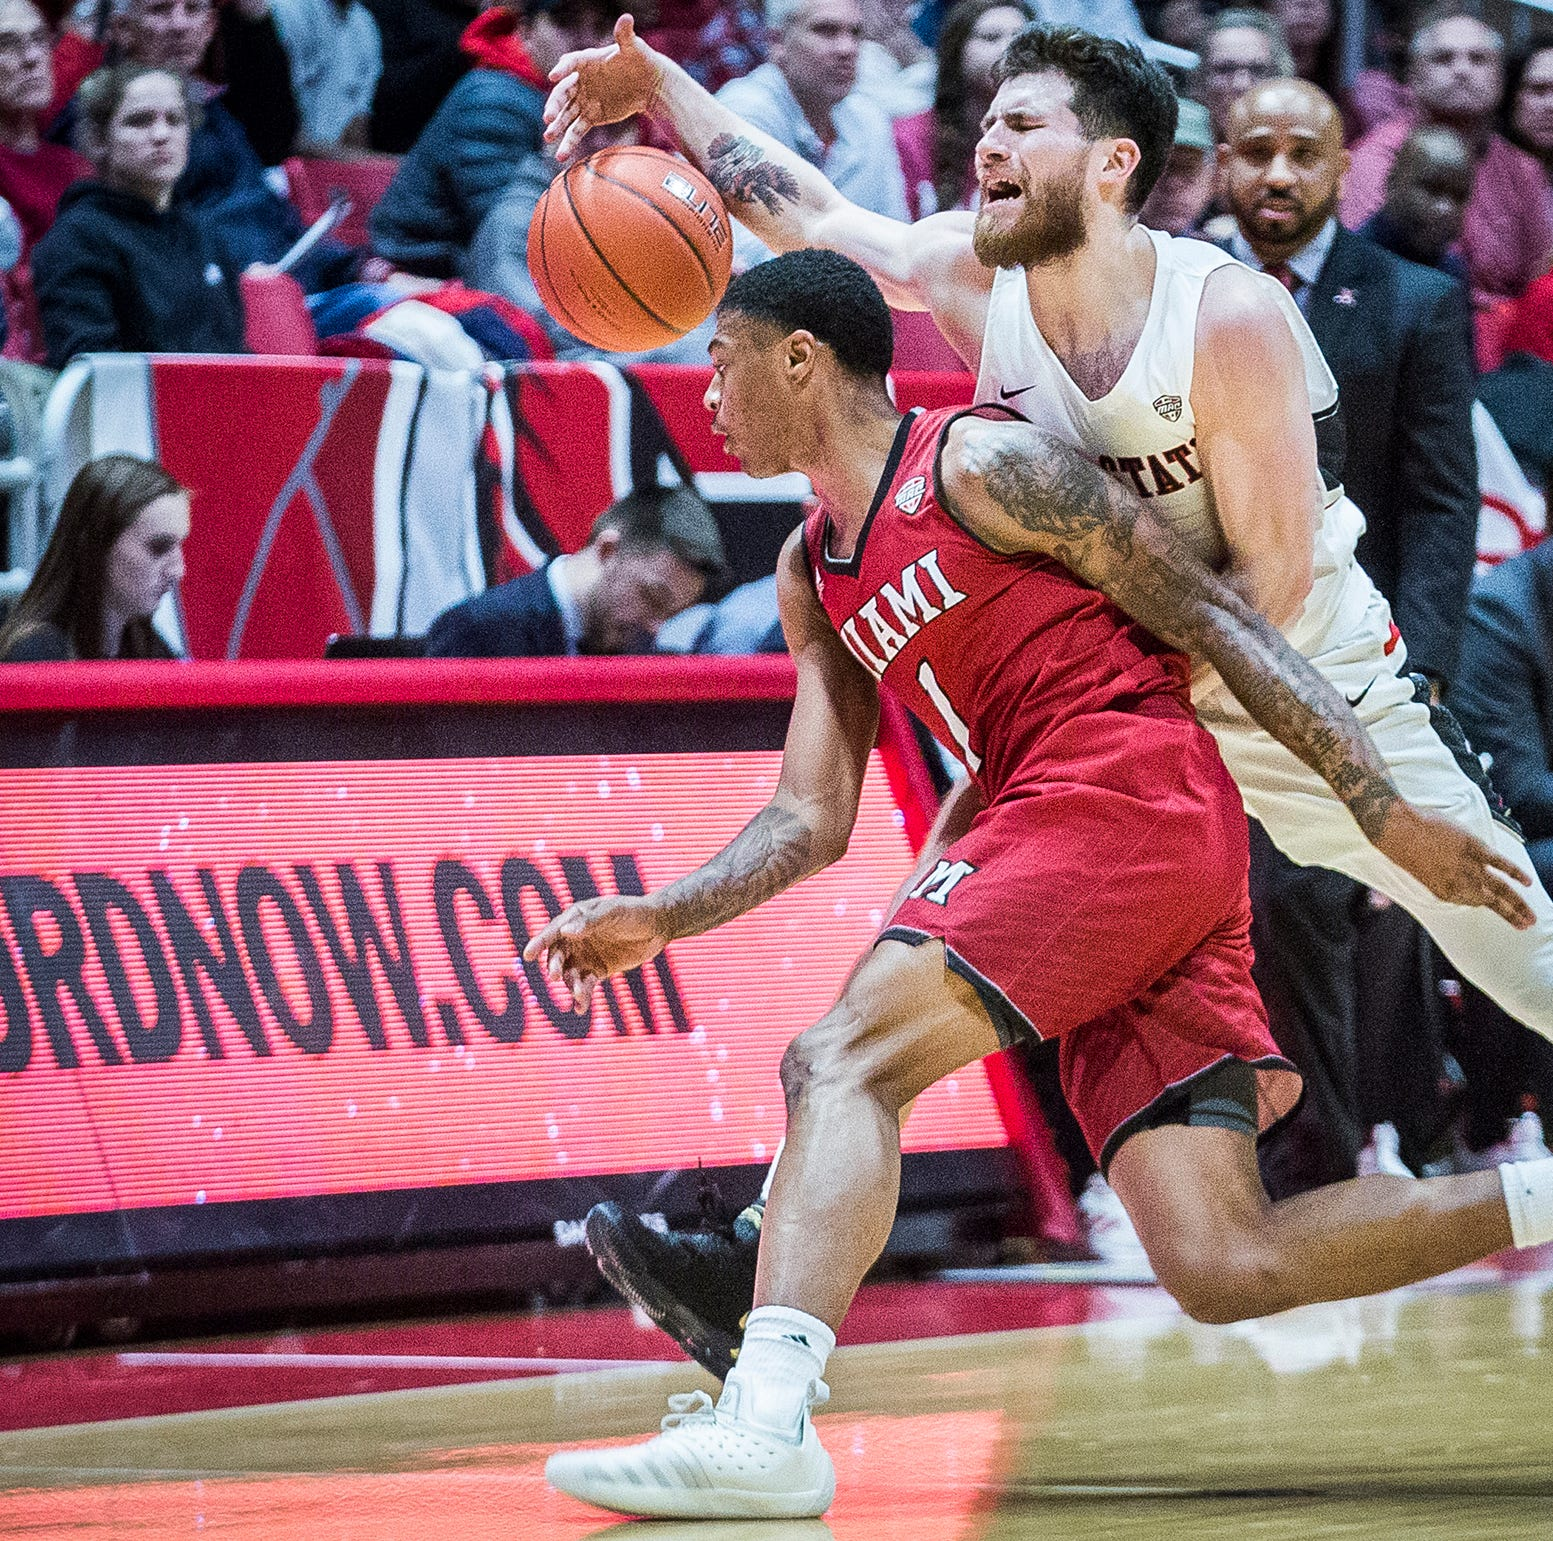 Ball State basketball: A rough patch or not as good as we thought?